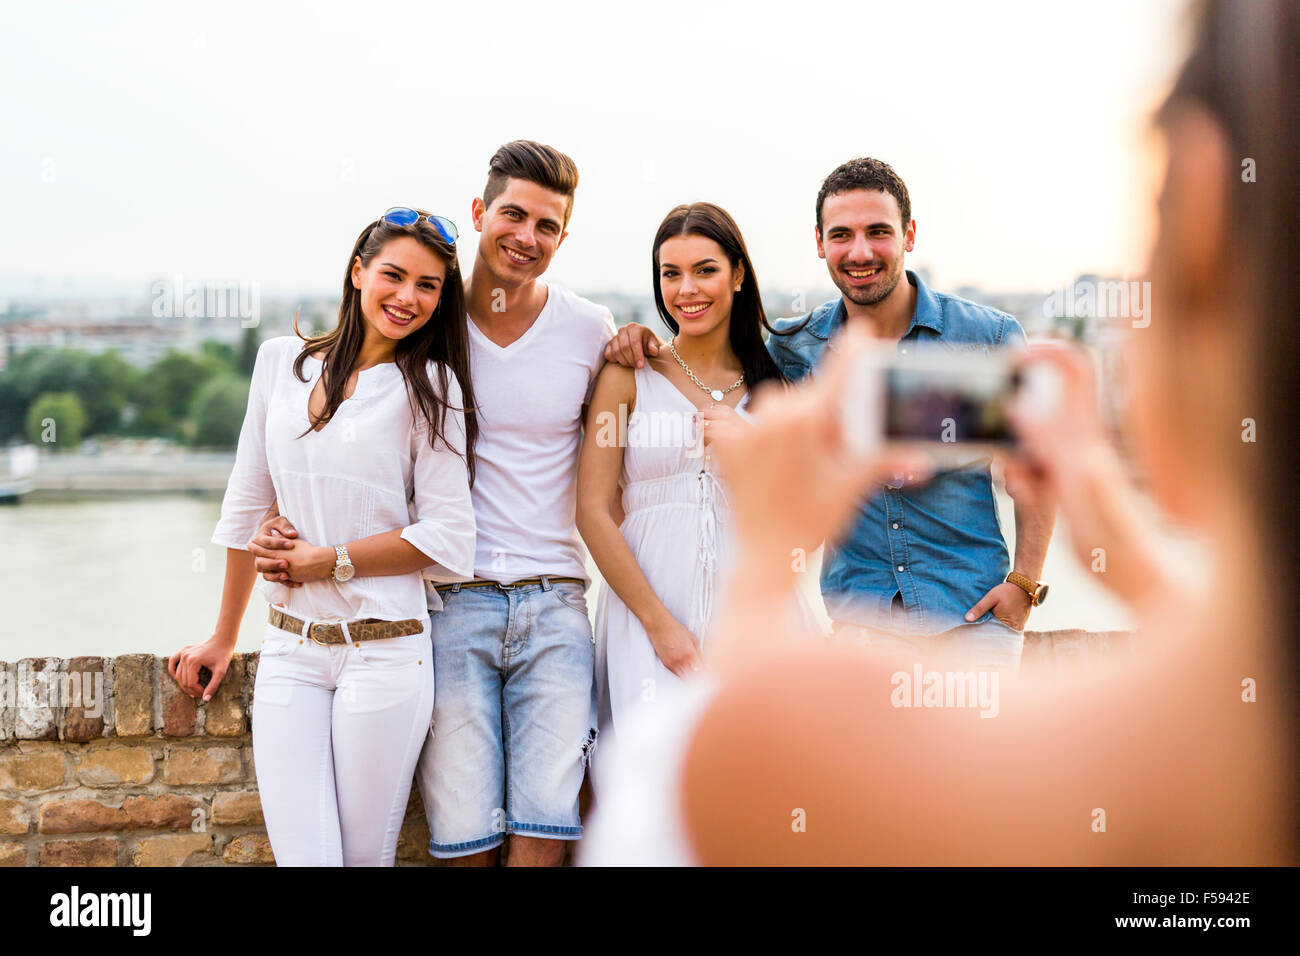 Young and beautiful couples taking photos with smartphone - Stock Image